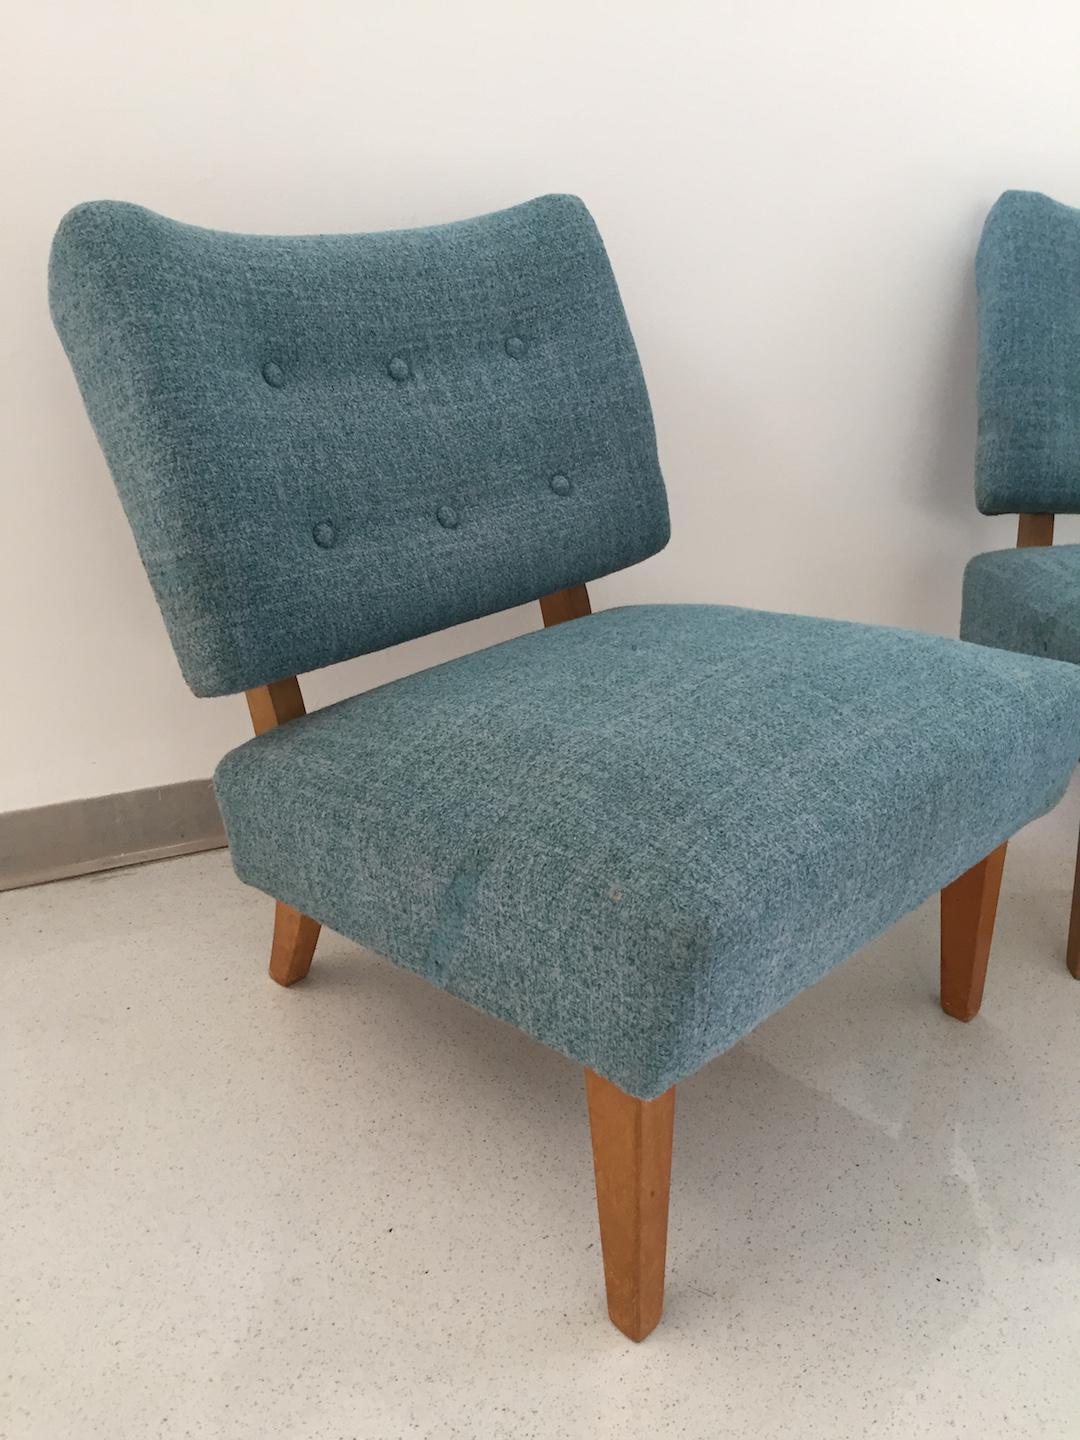 Vintage Kroehler Teal Blue Accent Slipper Chairs   A Pair   Image 5 Of 11